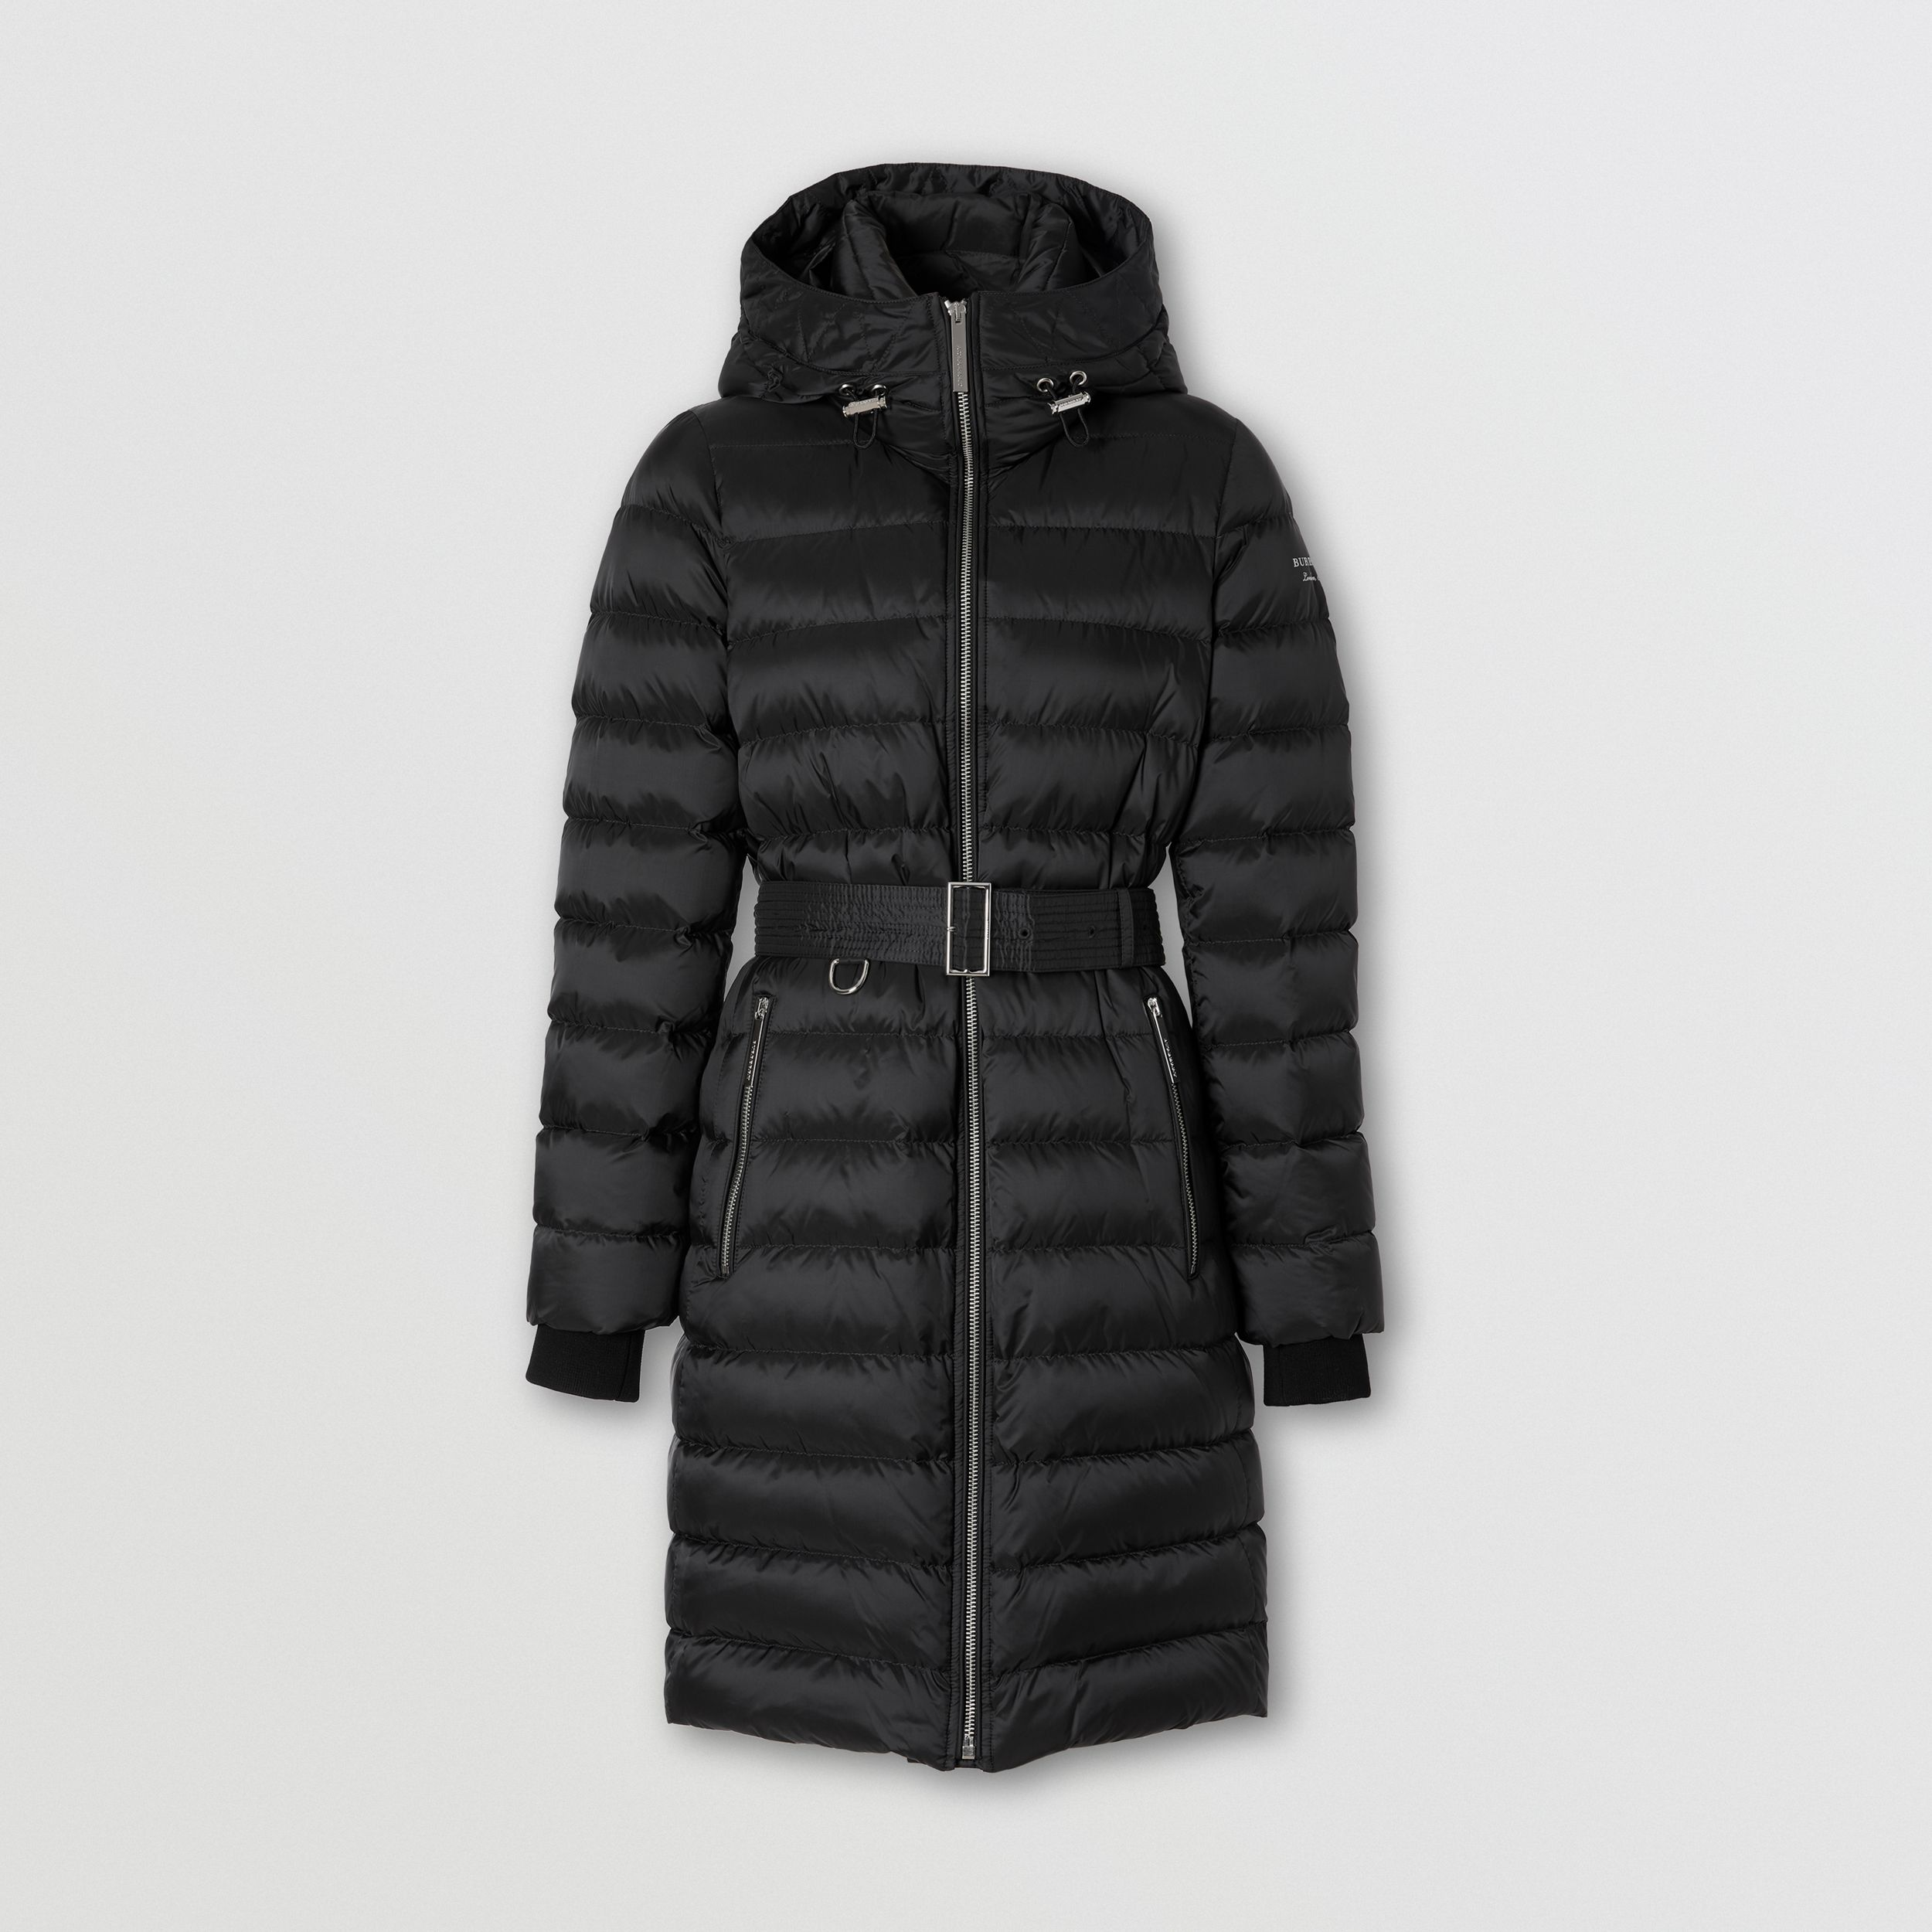 Logo Print Hooded Puffer Coat in Black - Women | Burberry - 1